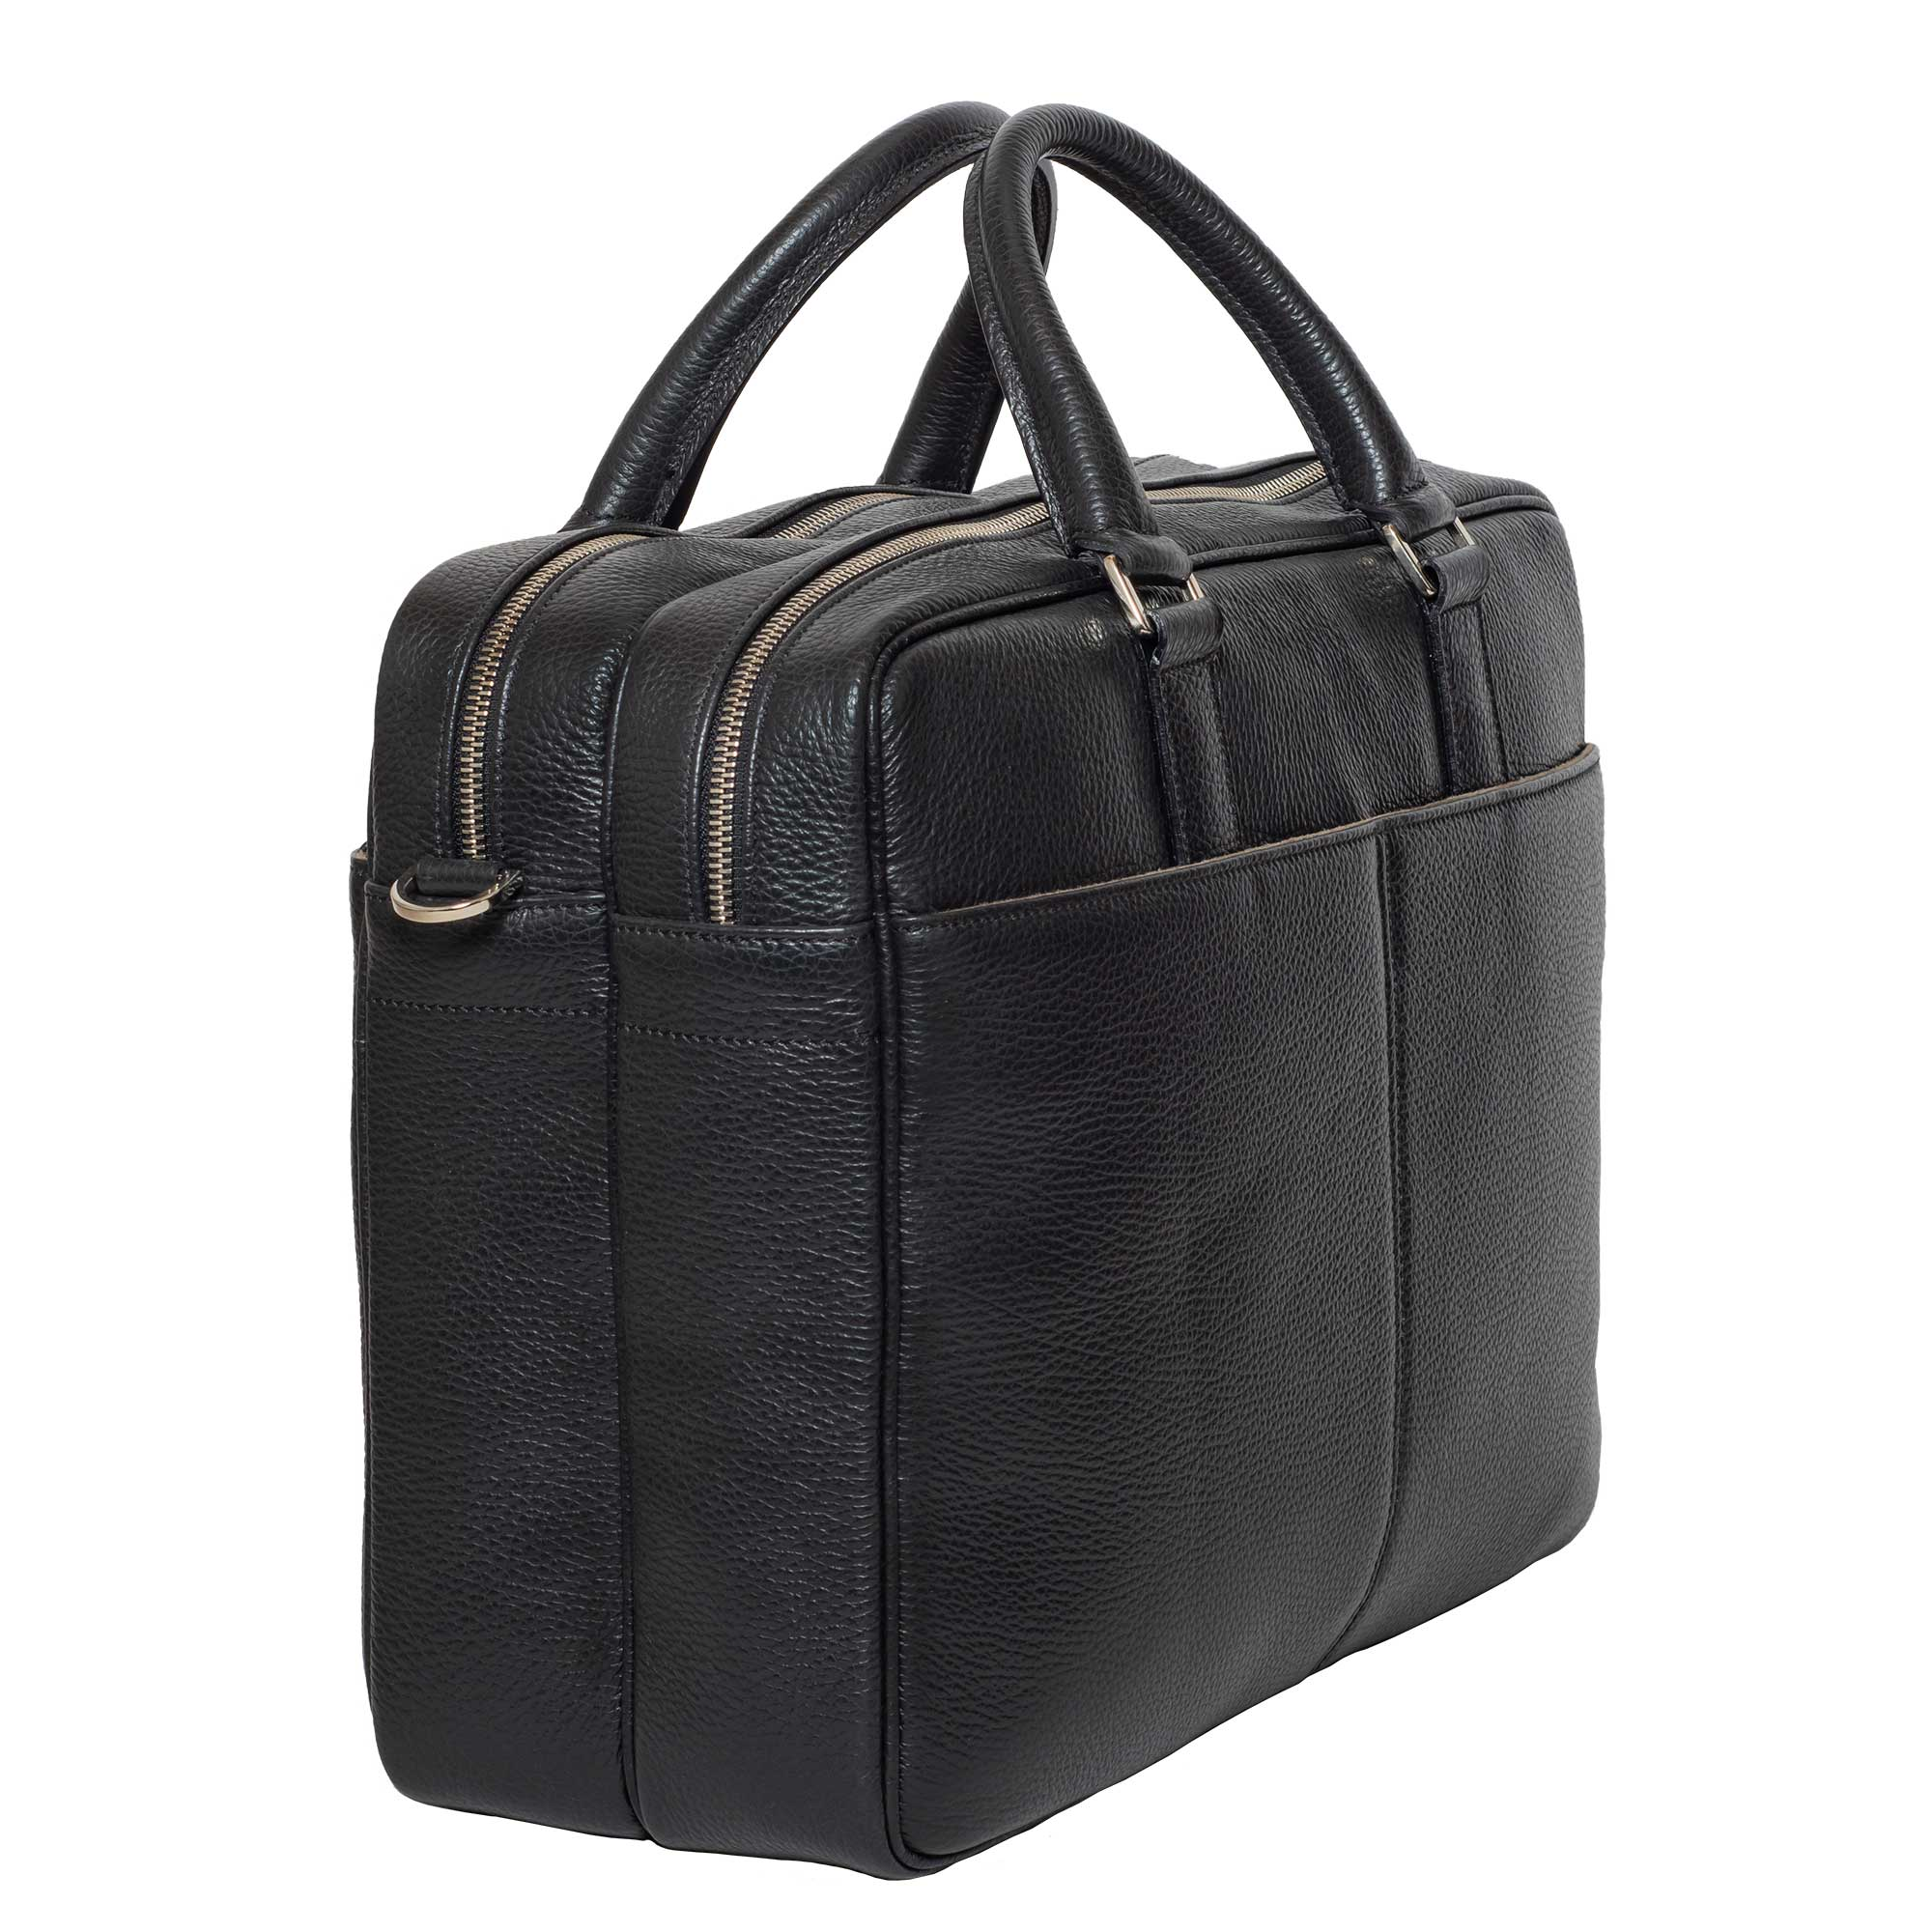 DiLoro Italian Leather Briefcases for Men | Made in Italy - Back, side view with two outside pockets